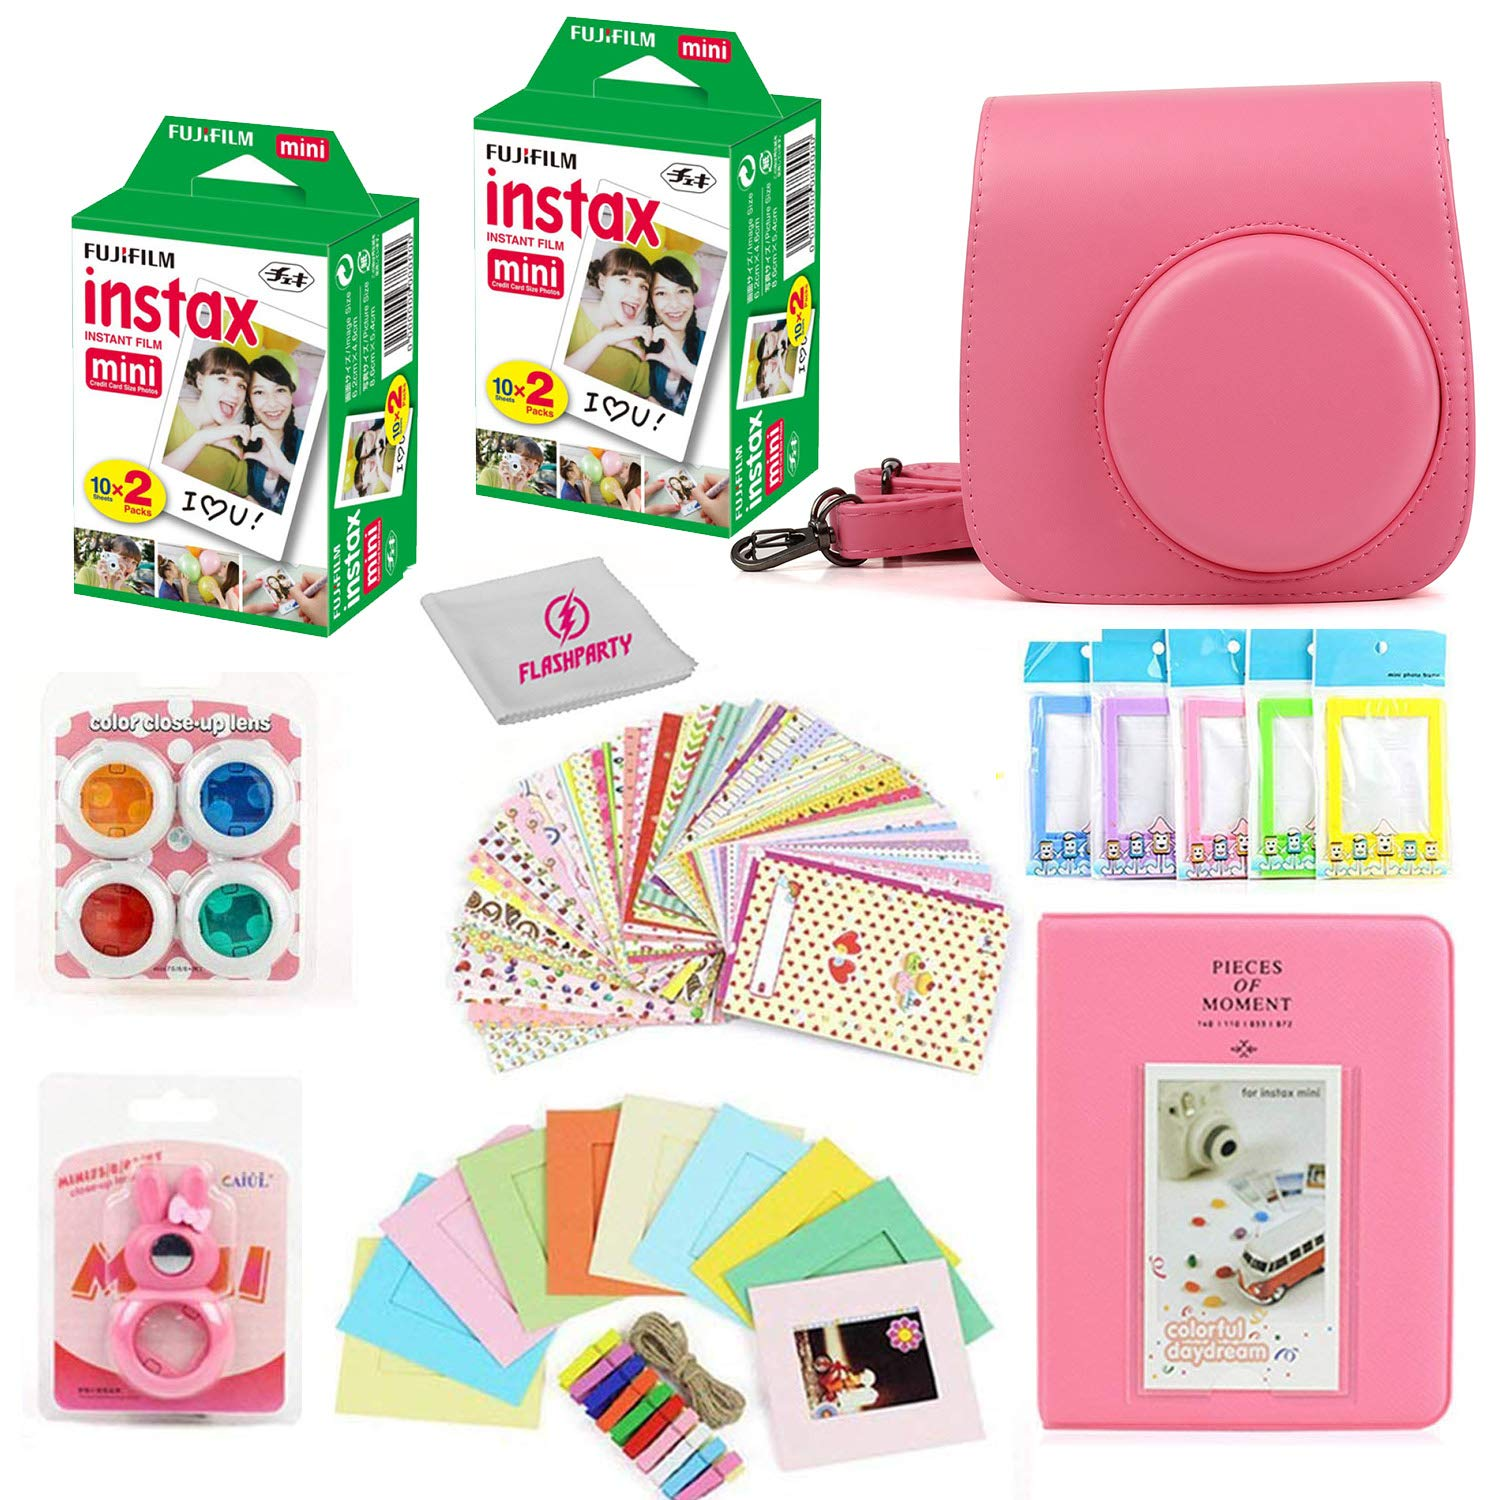 Fuji Instax Mini Instant Film Two Twin Packs (40 Sheets) + Protective Case + 40 Sticker Frames + Picture Frames + Photo Album + Microfiber Cleaning Cloth + More Accessories (Flamingo Pink) by Flash party